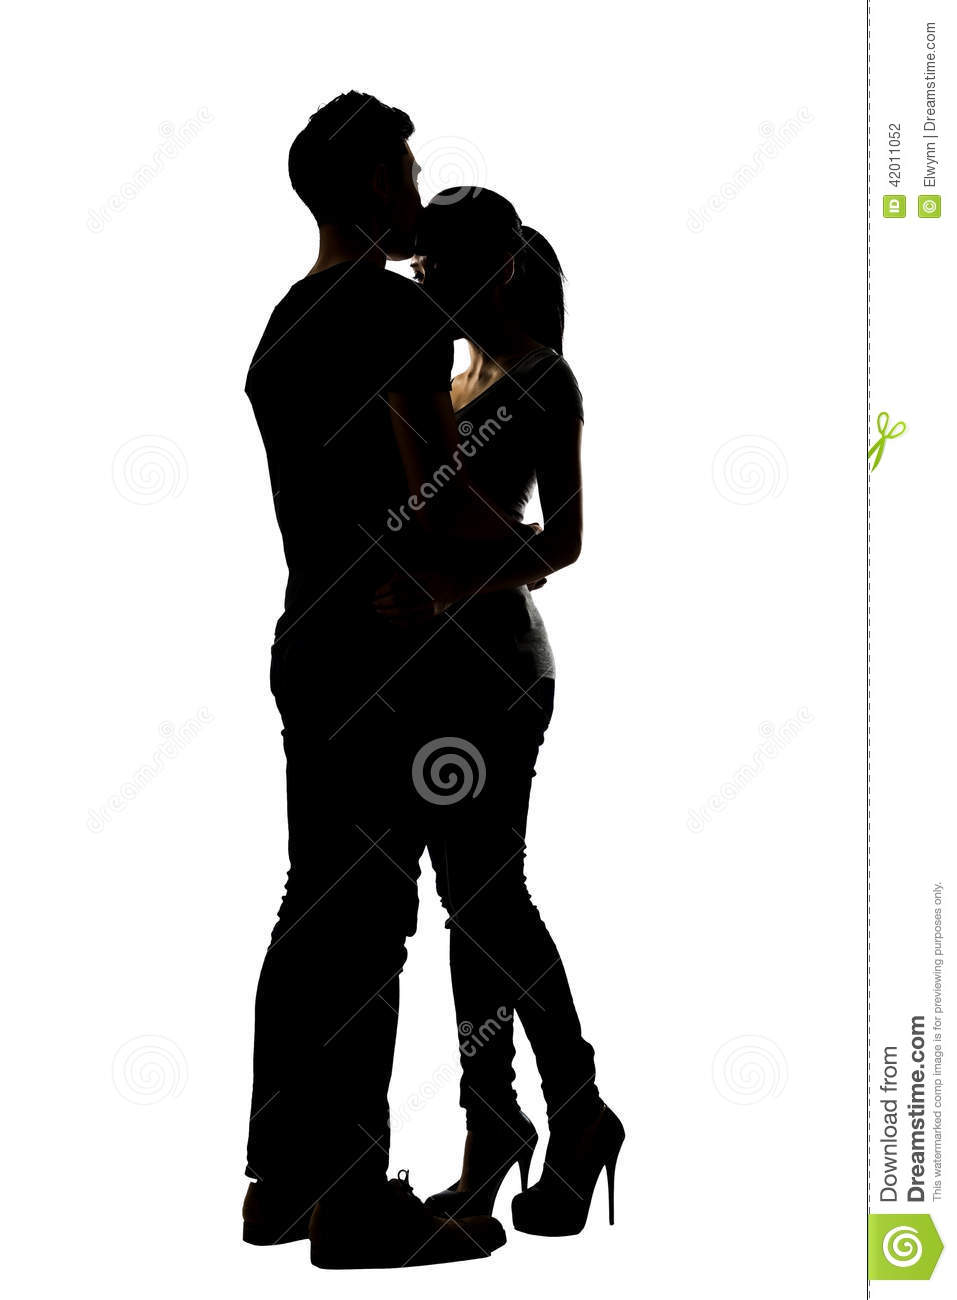 Ballroom Dancing Silhouette Vector Silhouette Of Asian Co...